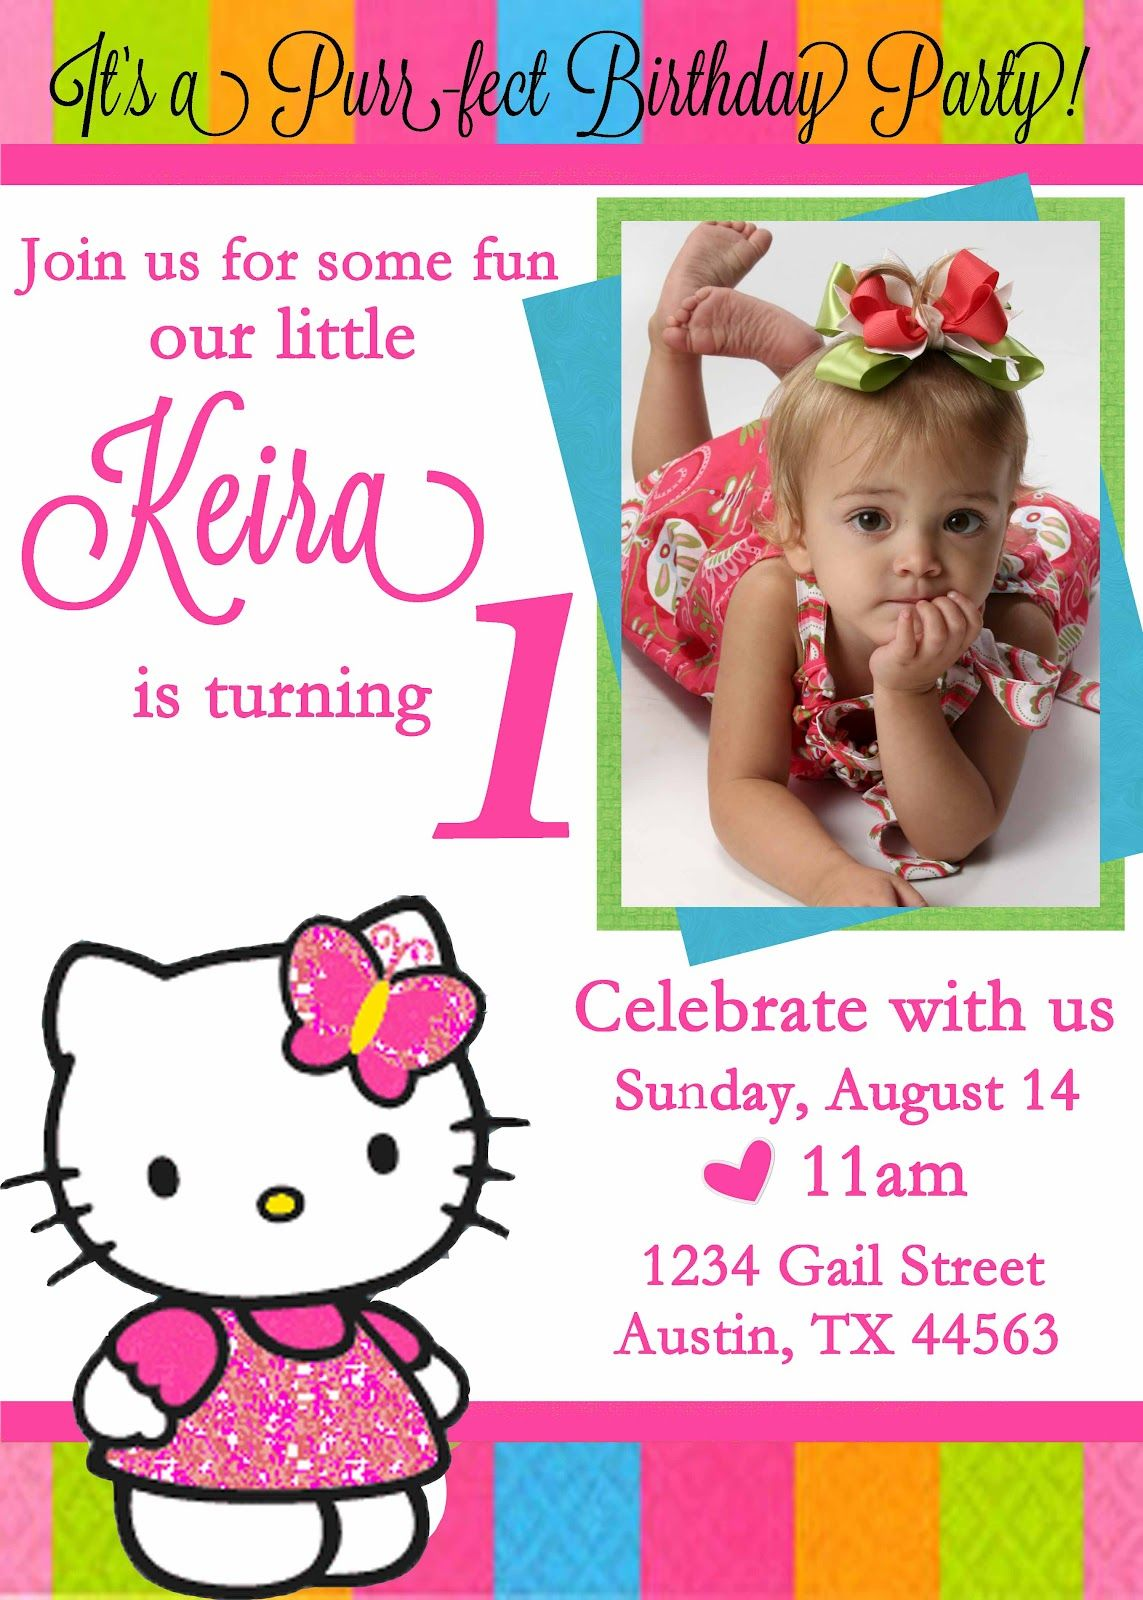 What Come And Join My 1st Birthday Party When Monday October 03